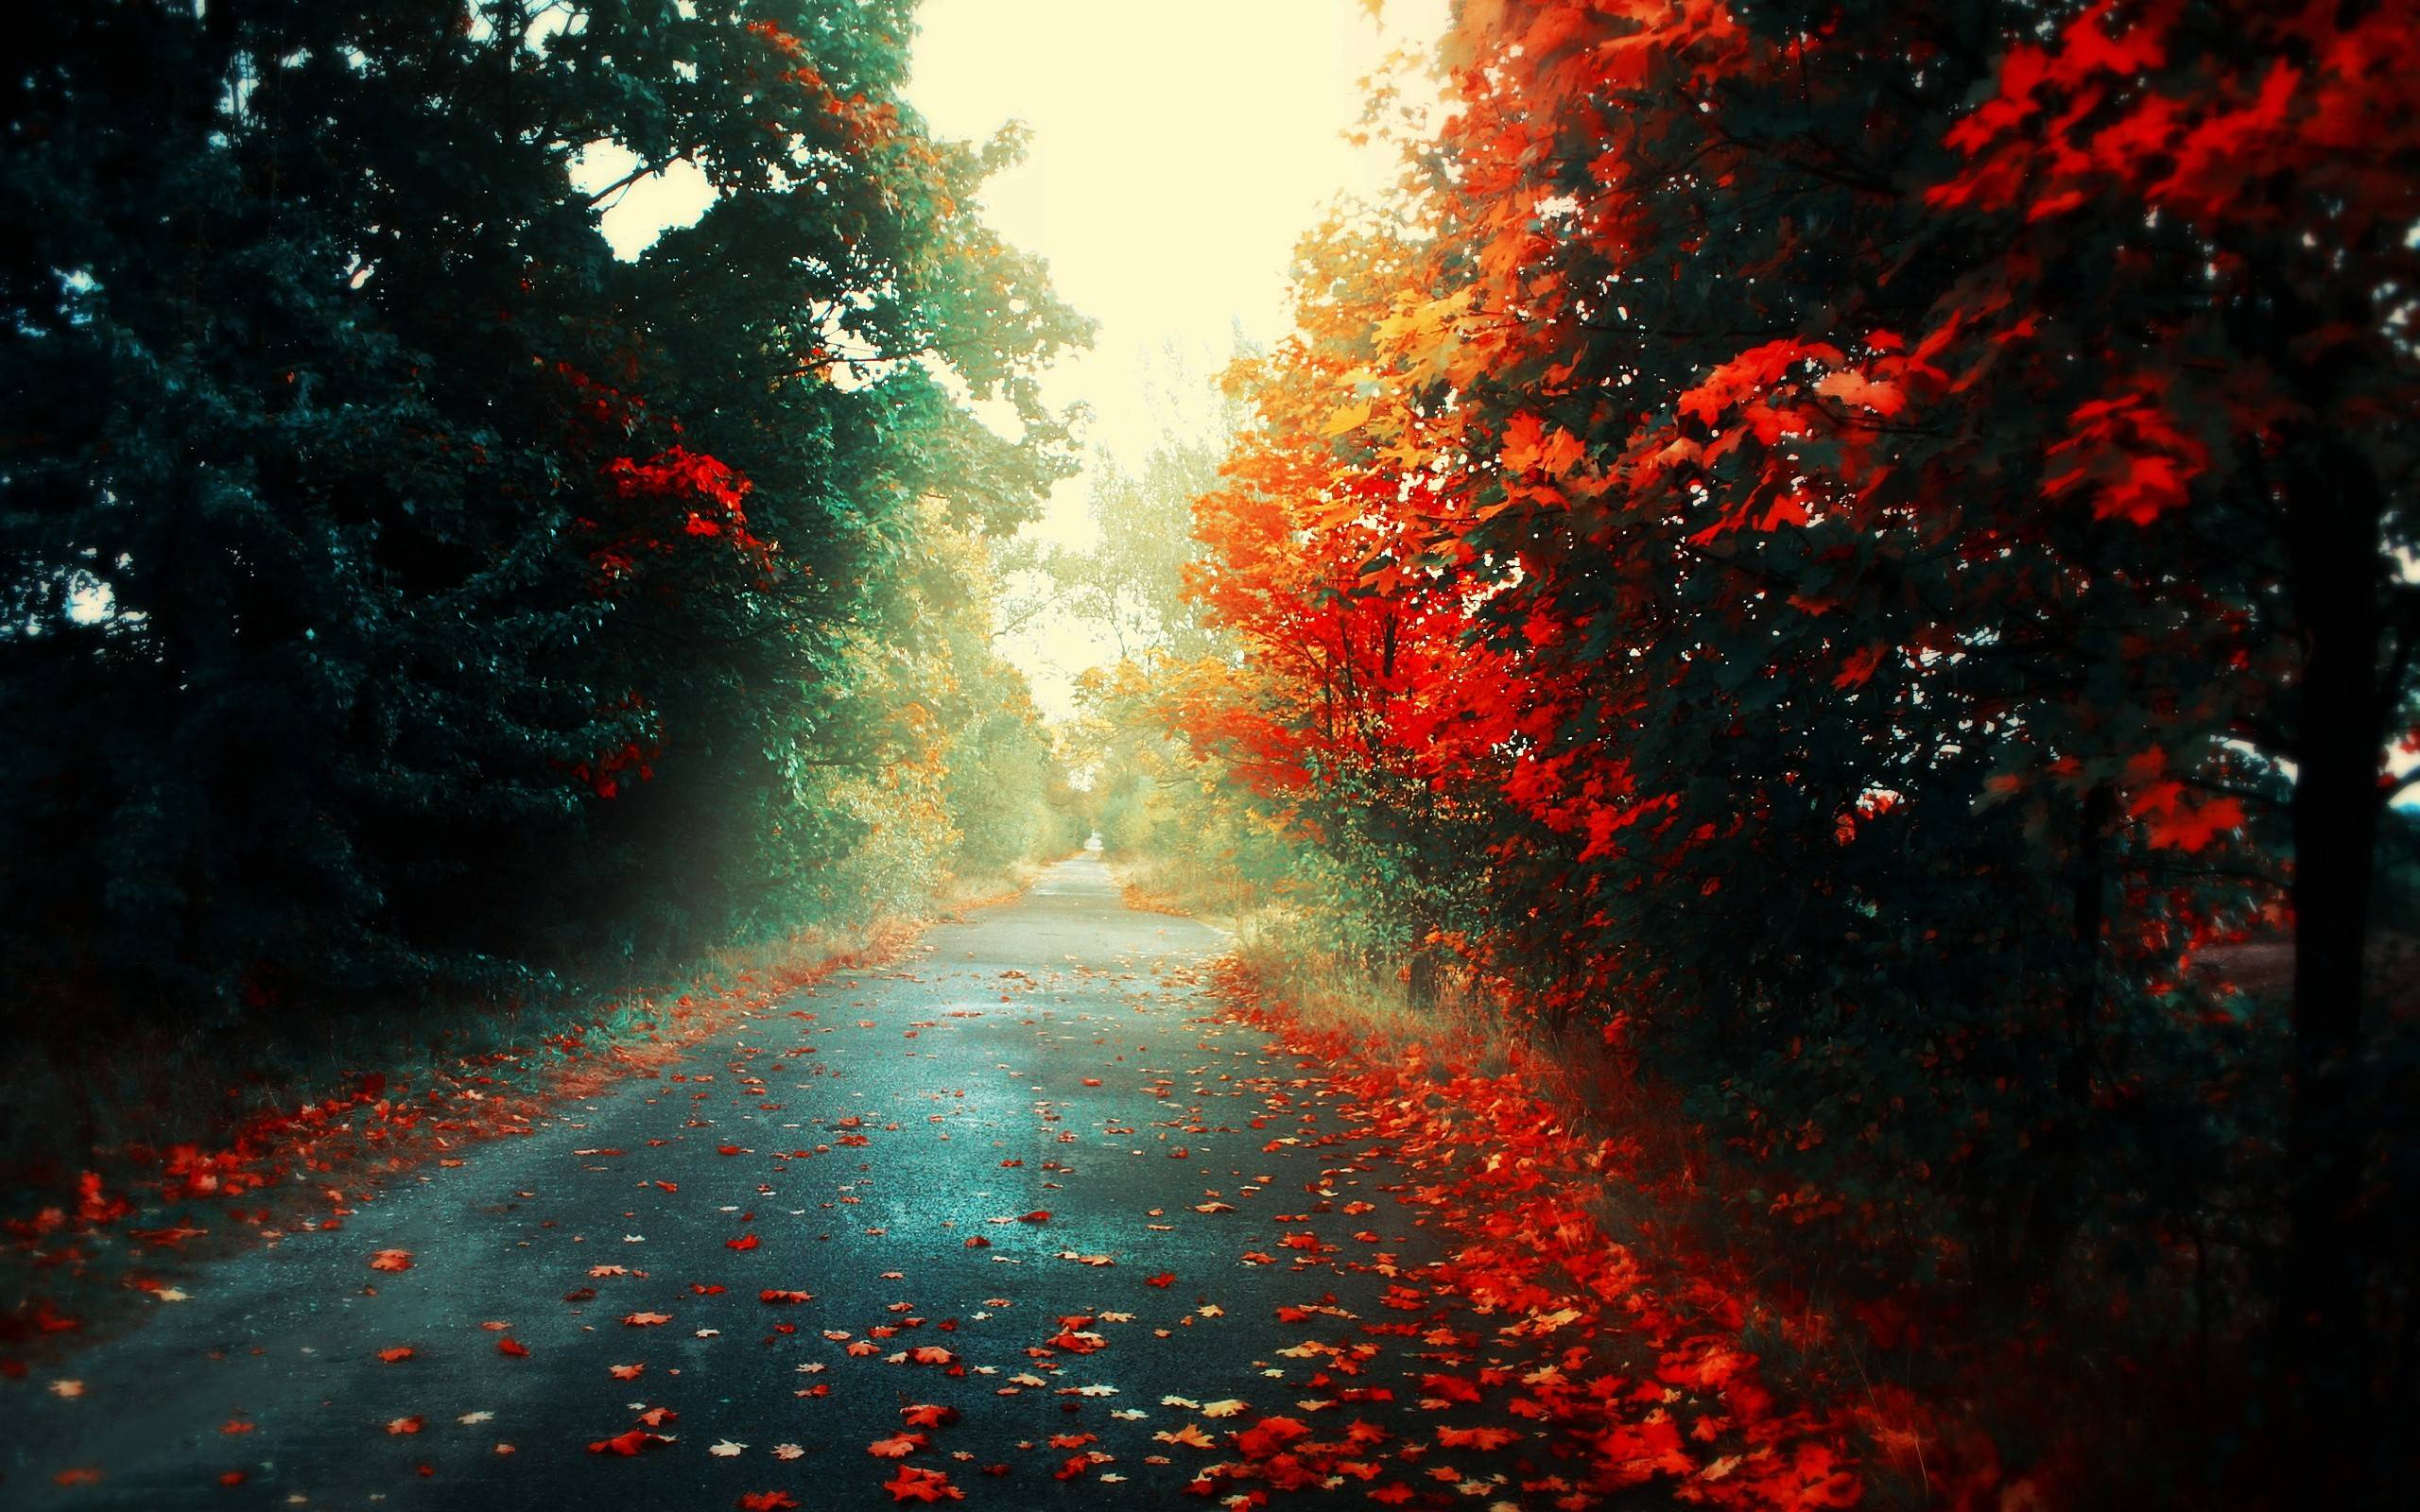 Autumn-can-be-dangerously-beautiful-wallpaper-wp4603848-1